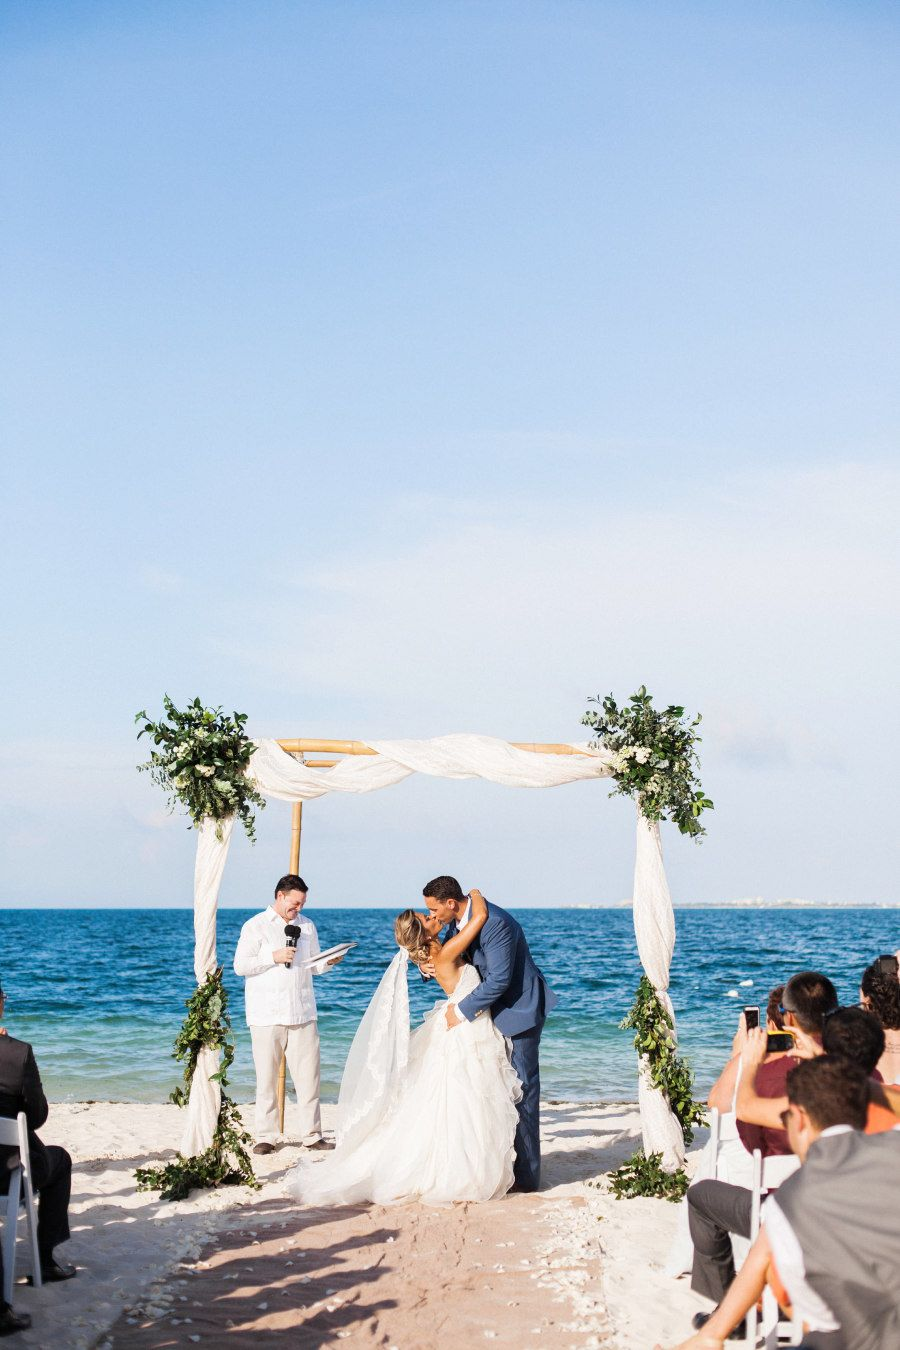 Dress for destination beach wedding guest  From Canada to Cancun This is a Perfect Destination Wedding